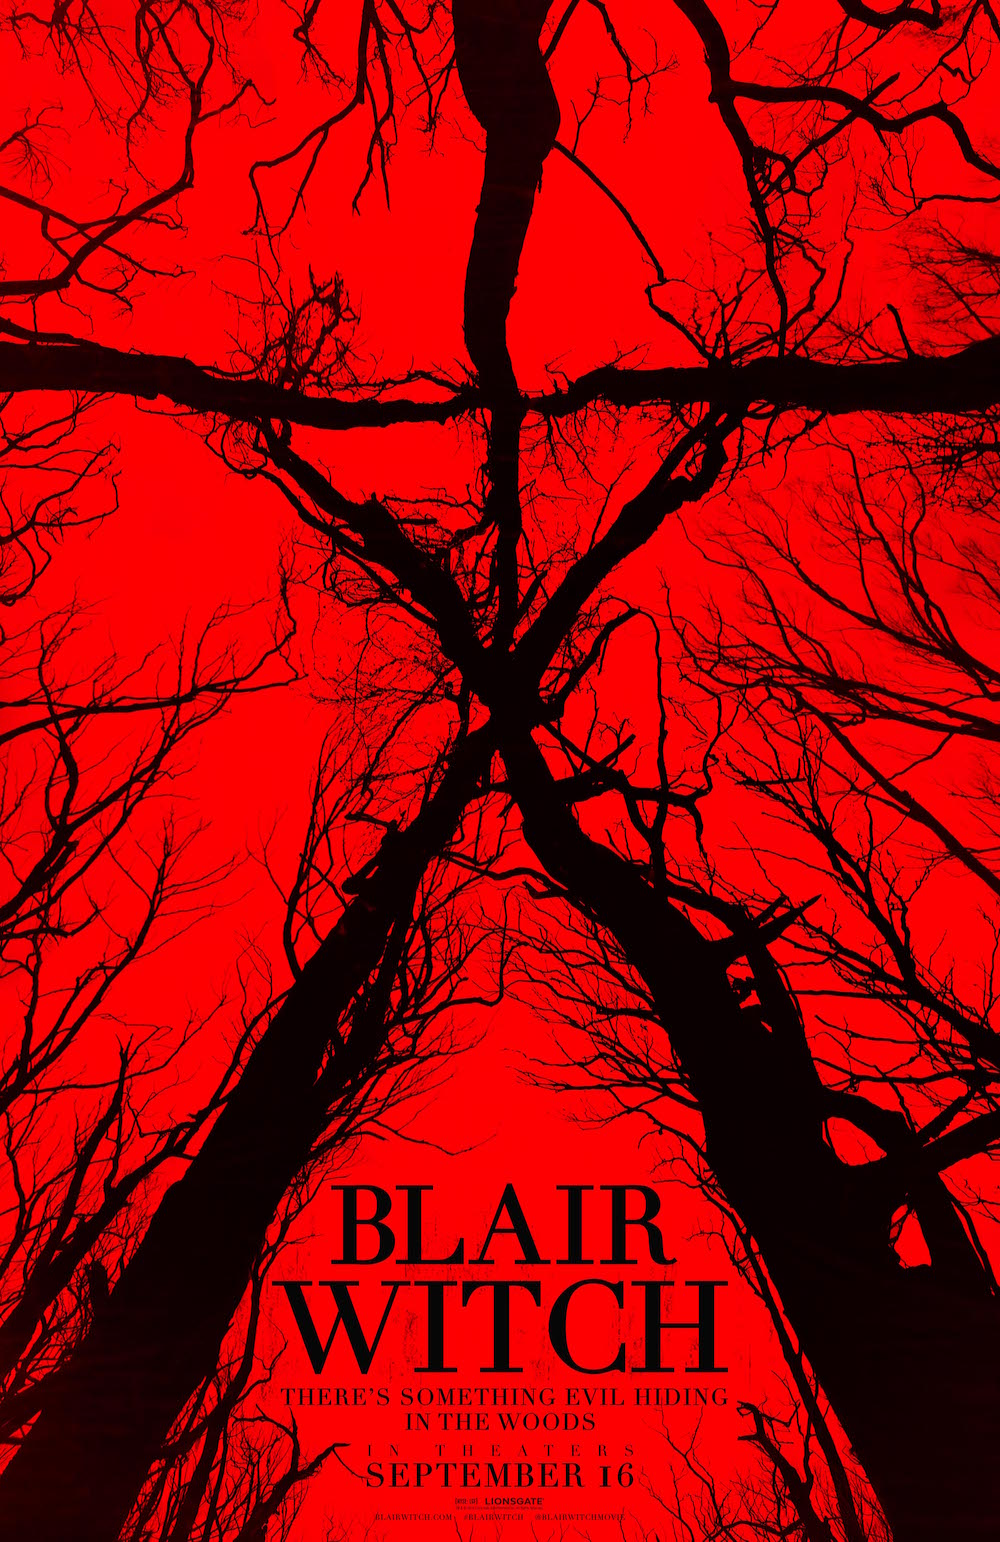 I absolutely love this poster. Every aspect is great: the unsettling red, the towering trees, the confusing and warped perspective.